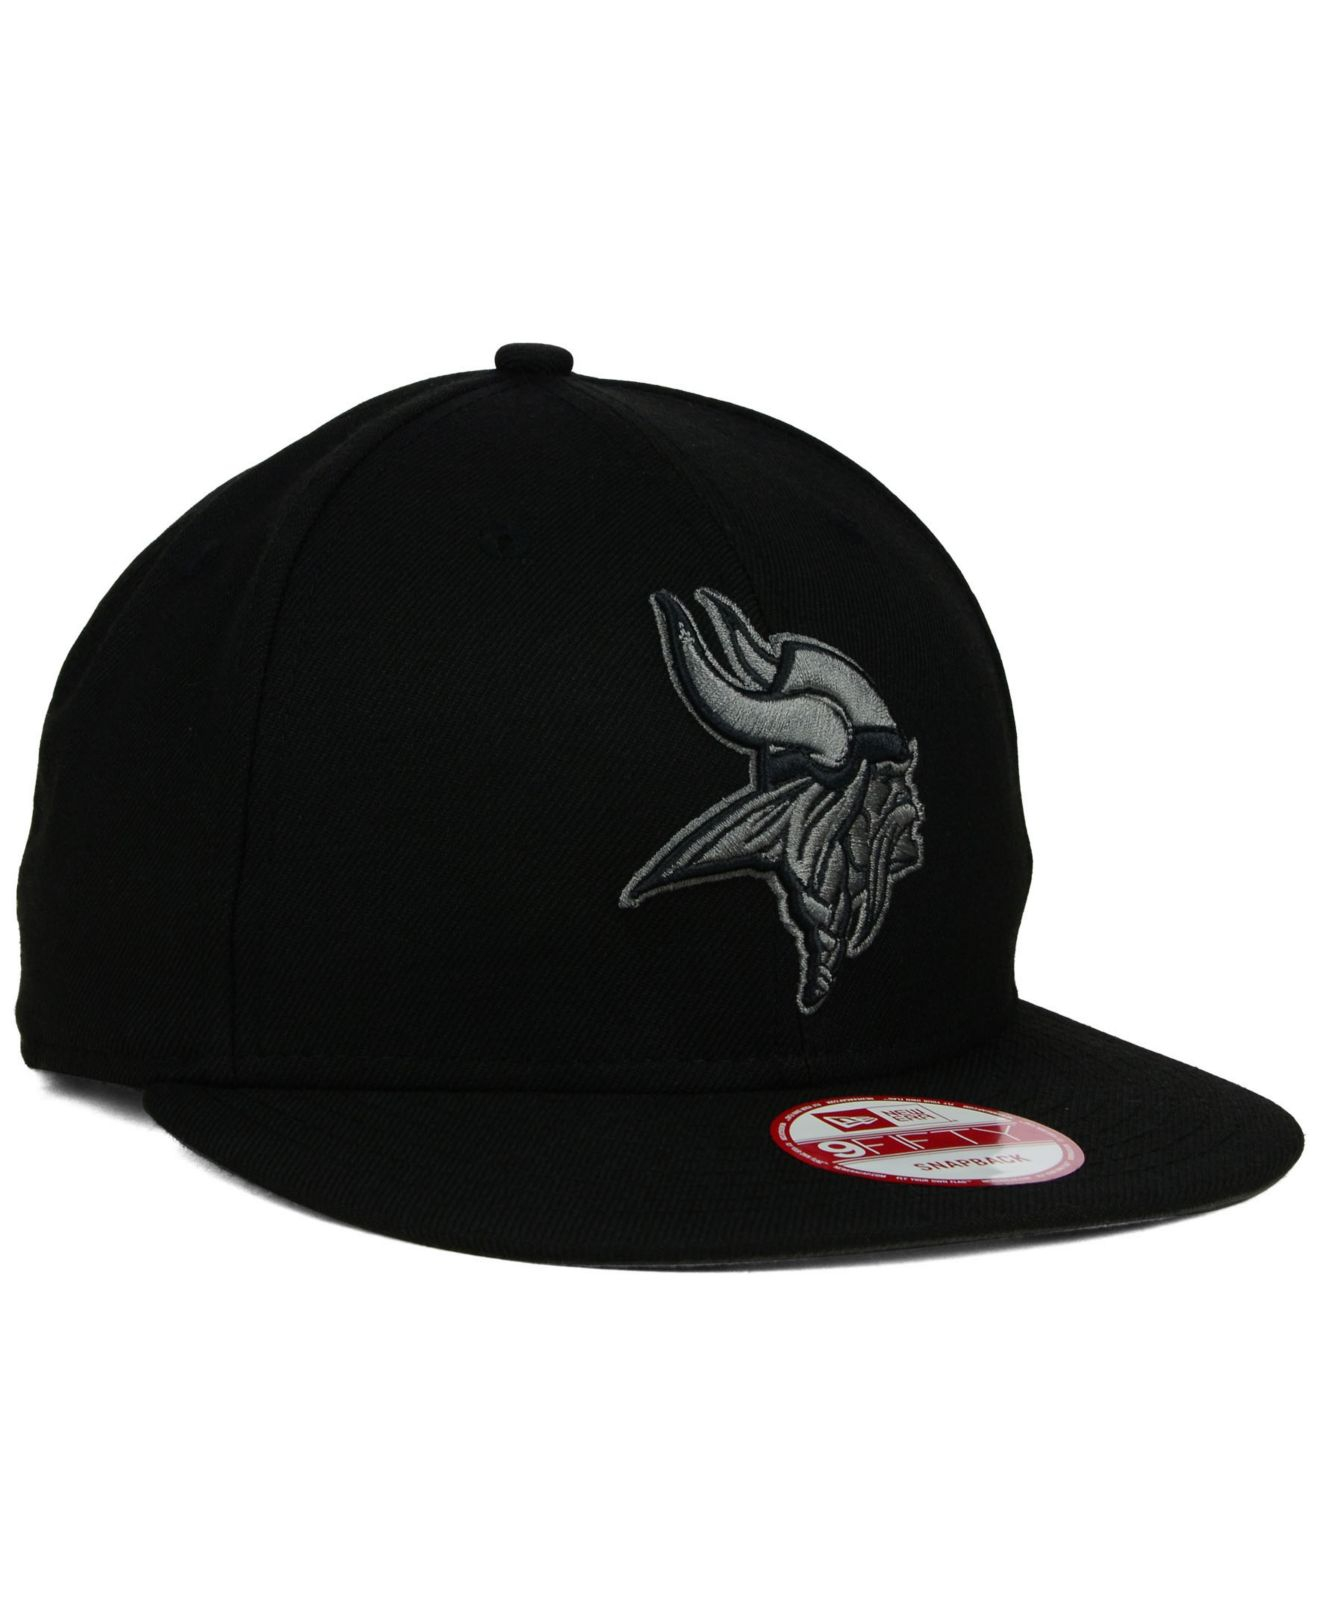 online store 6deb4 a1daa ... nfl white eef87 97650 discount fashion 4183c d1873 lyst ktz minnesota  vikings black gray 59fifty hat in black d9ba8 ab05e ...